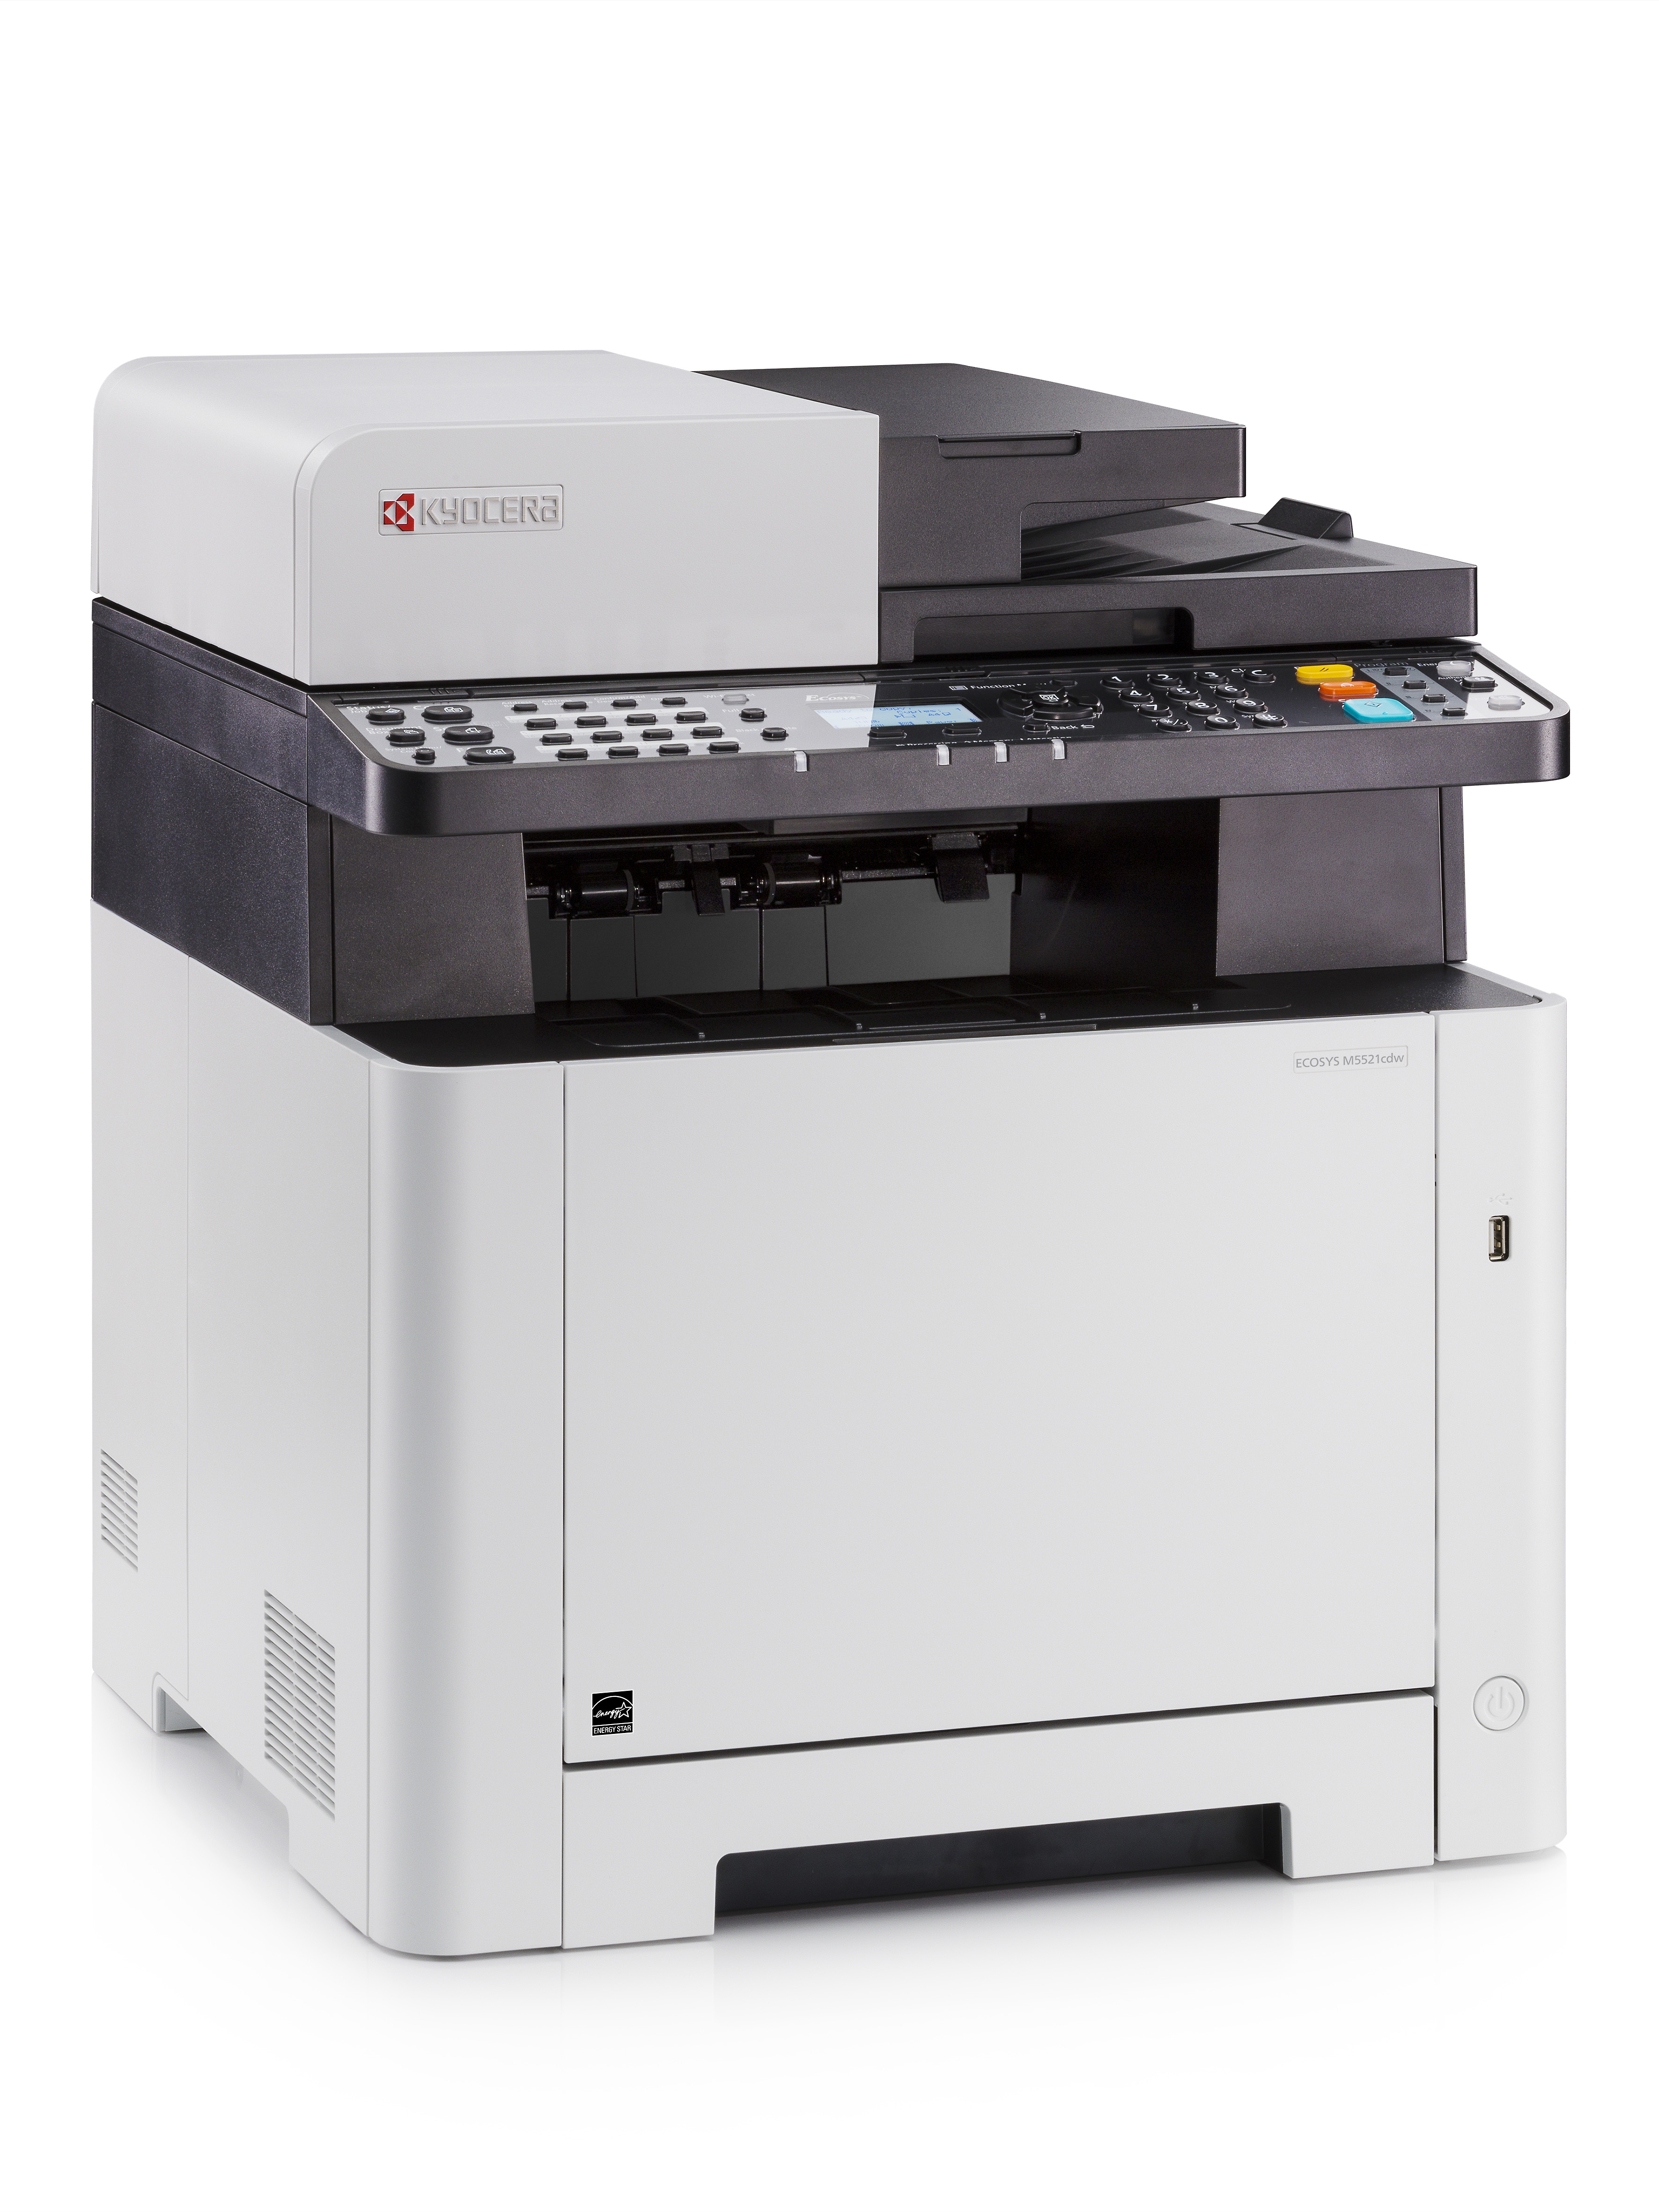 Kyocera, Ecosys, M5521CDW, A4, 21ppm, Colour, WiFi, Colour, Laser, MFP,